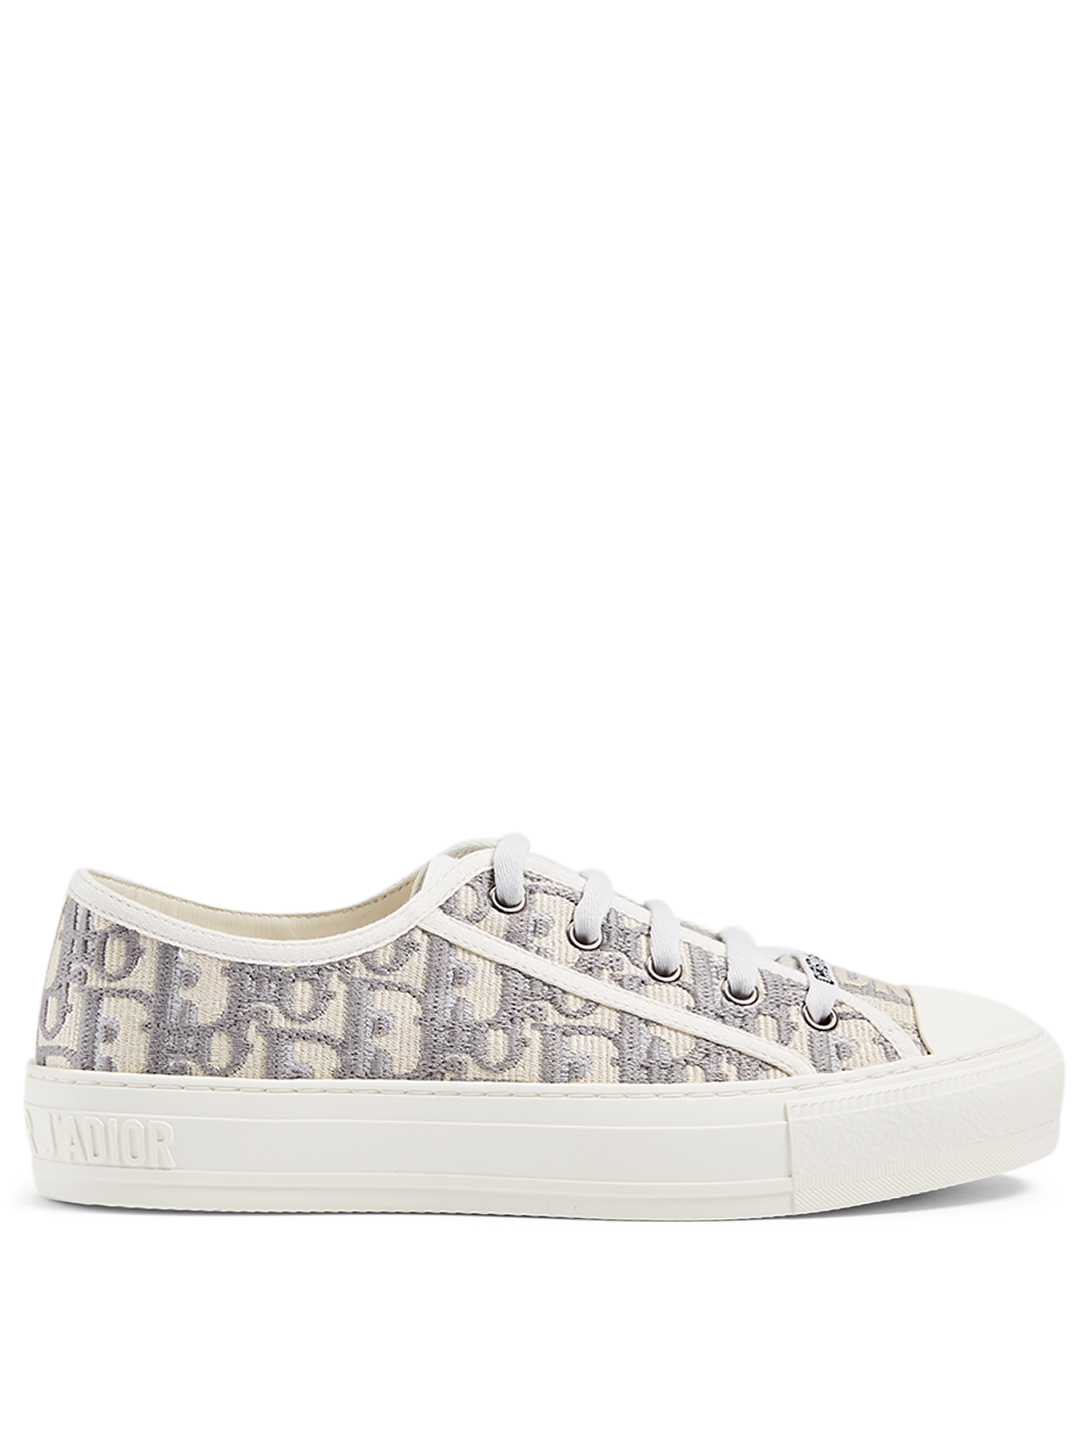 DIOR Walk'n'Dior Dior Oblique Embroidered Cotton Sneaker Women's Grey